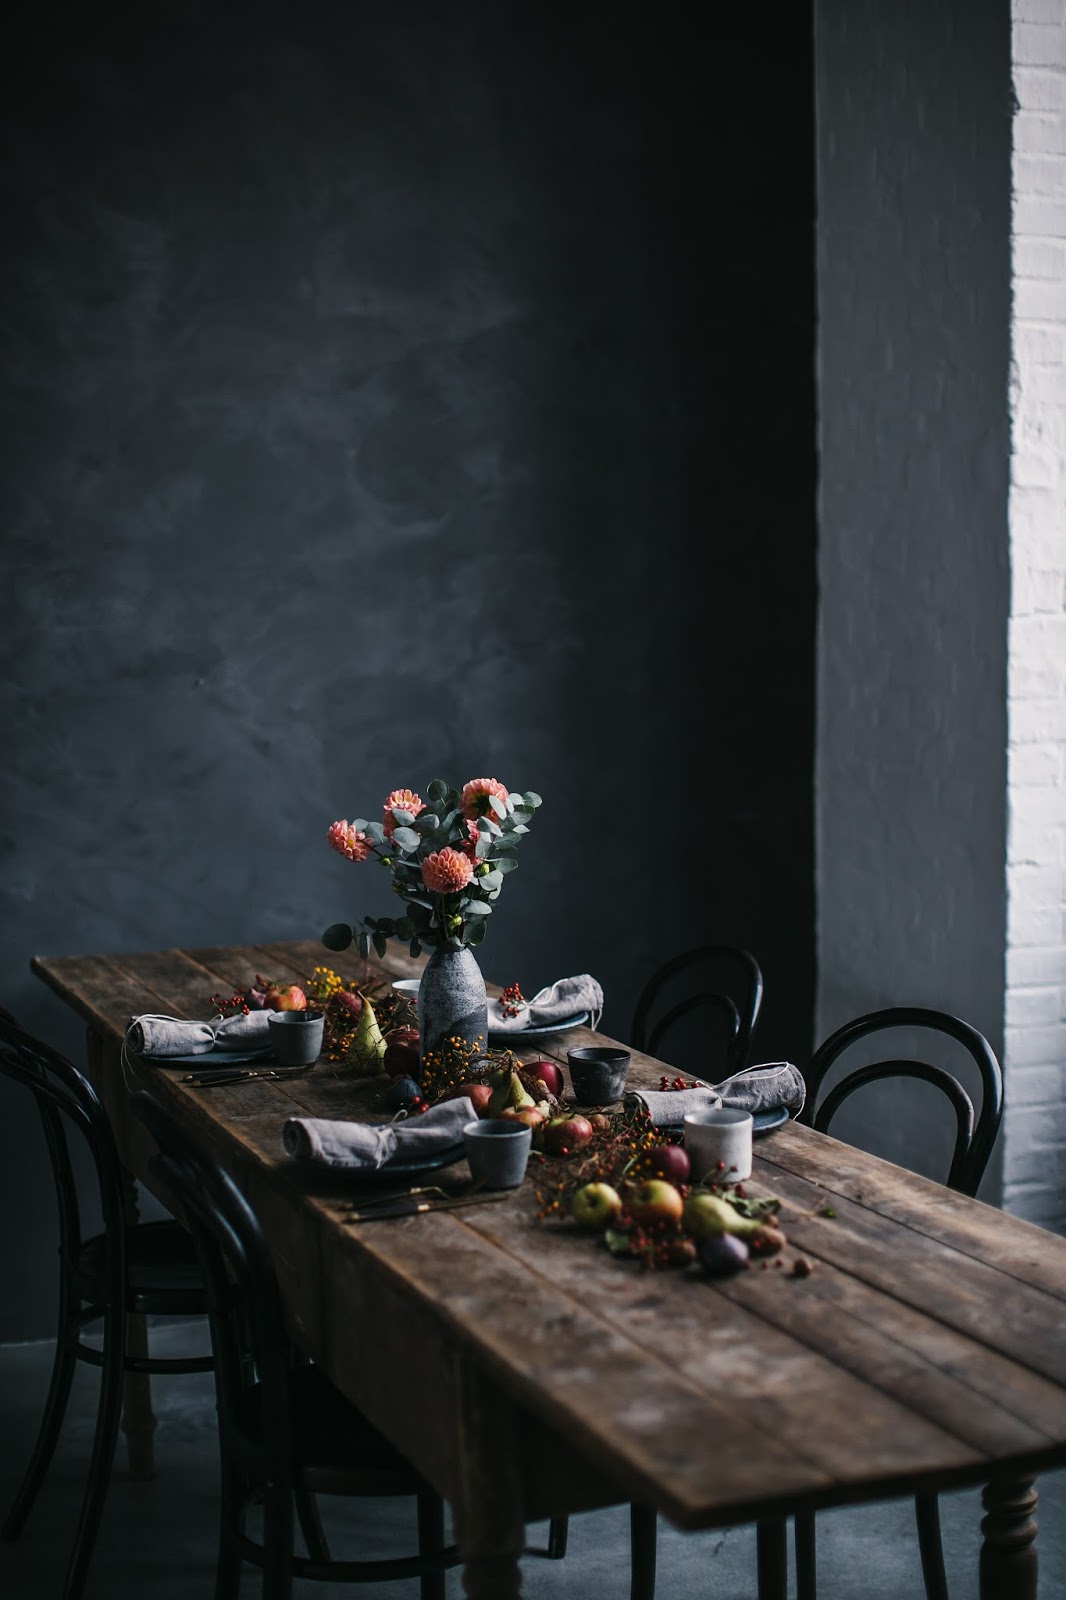 Rustic dining room from Our Food Stories